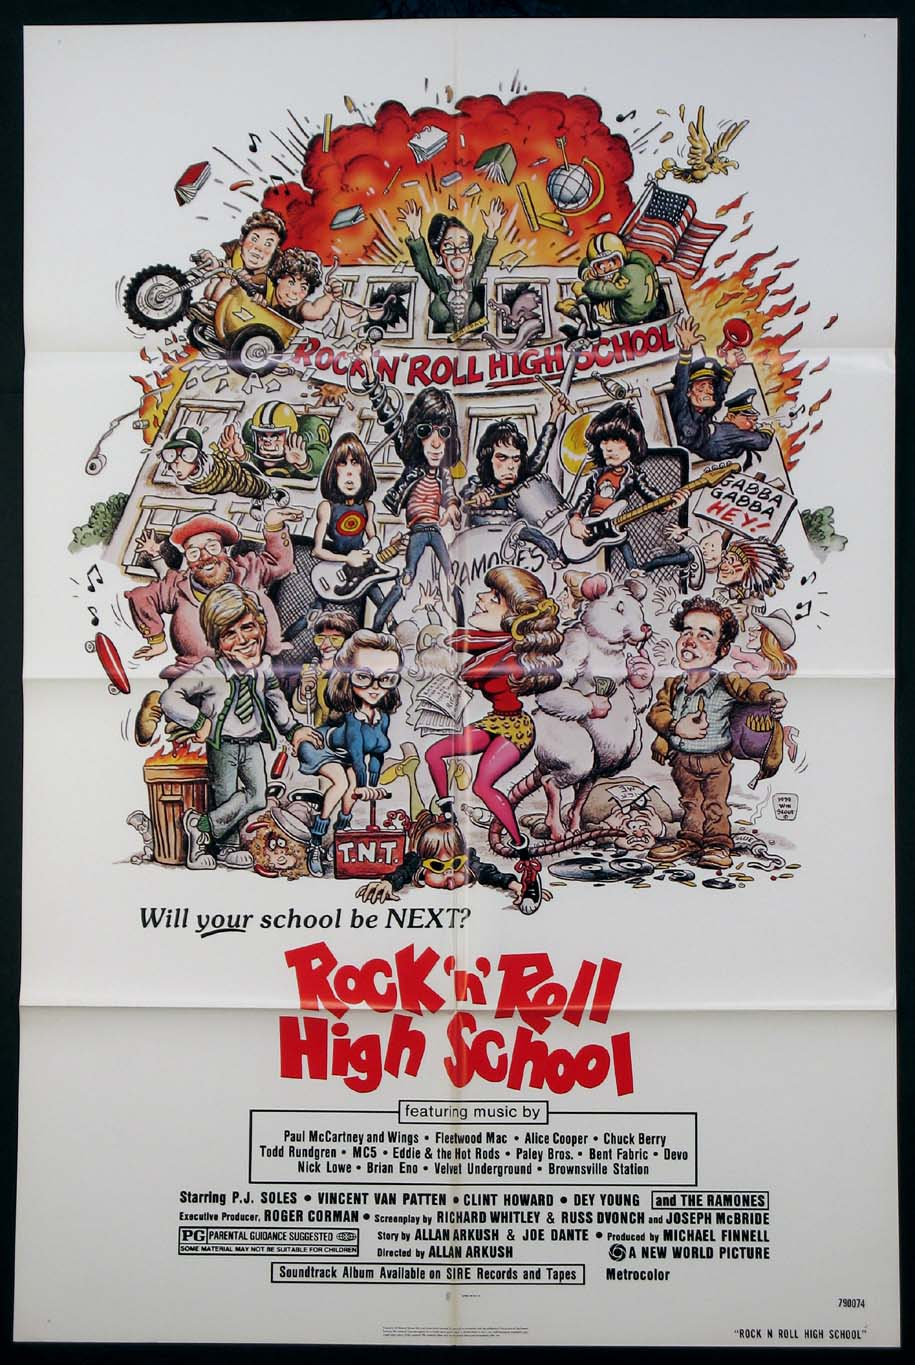 ROCK N ROLL HIGH SCHOOL (Rock and Roll High School) @ FilmPosters.com